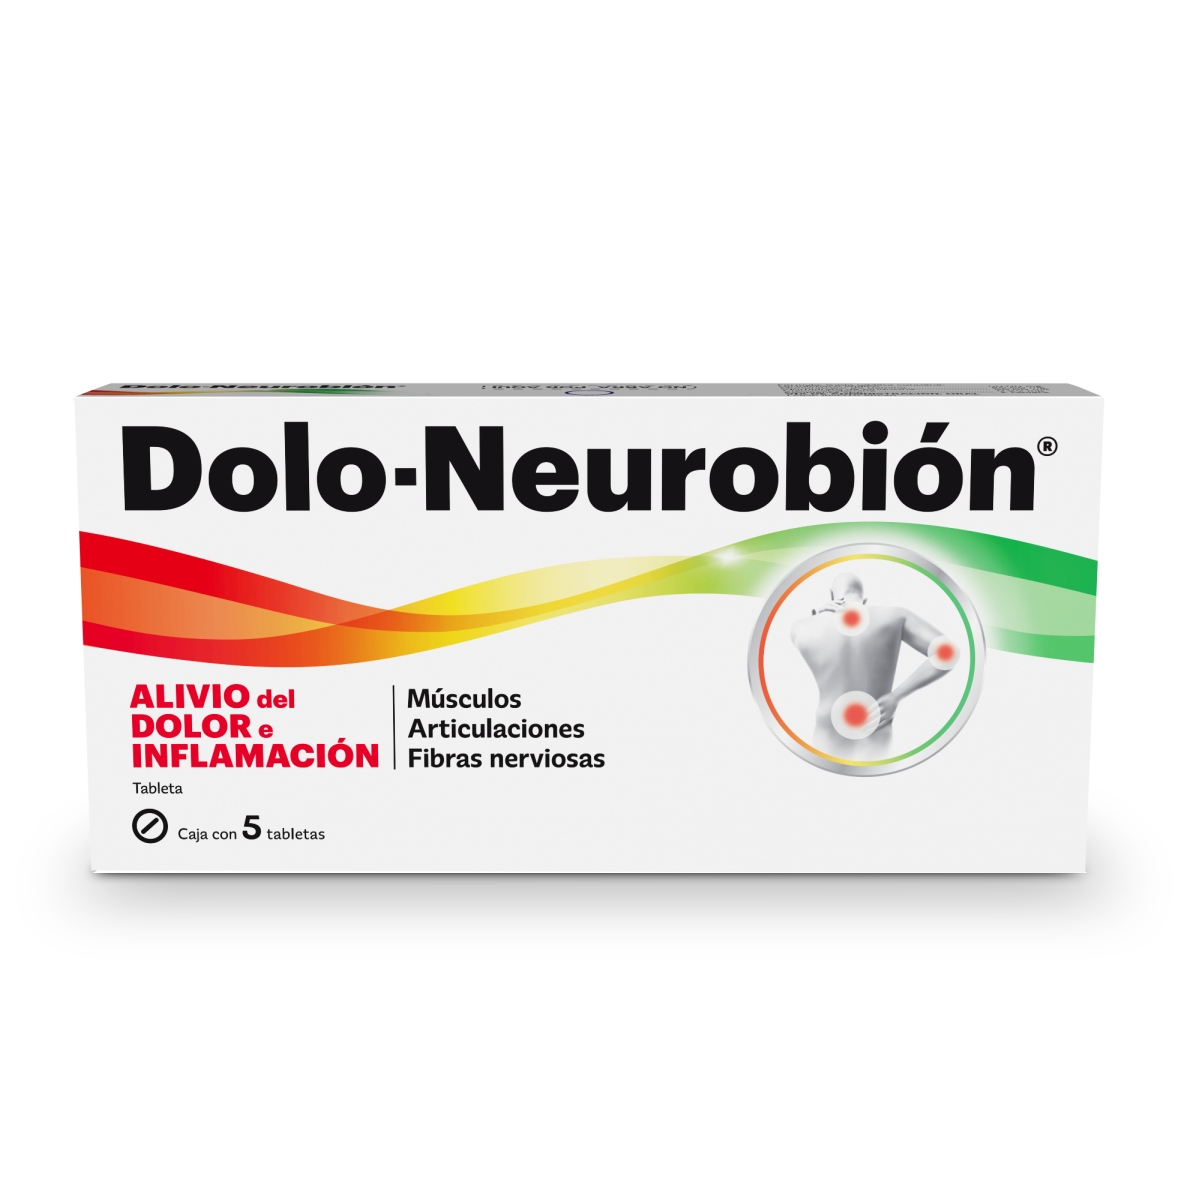 Product Page - Dolo-Neurobión® variant packshot